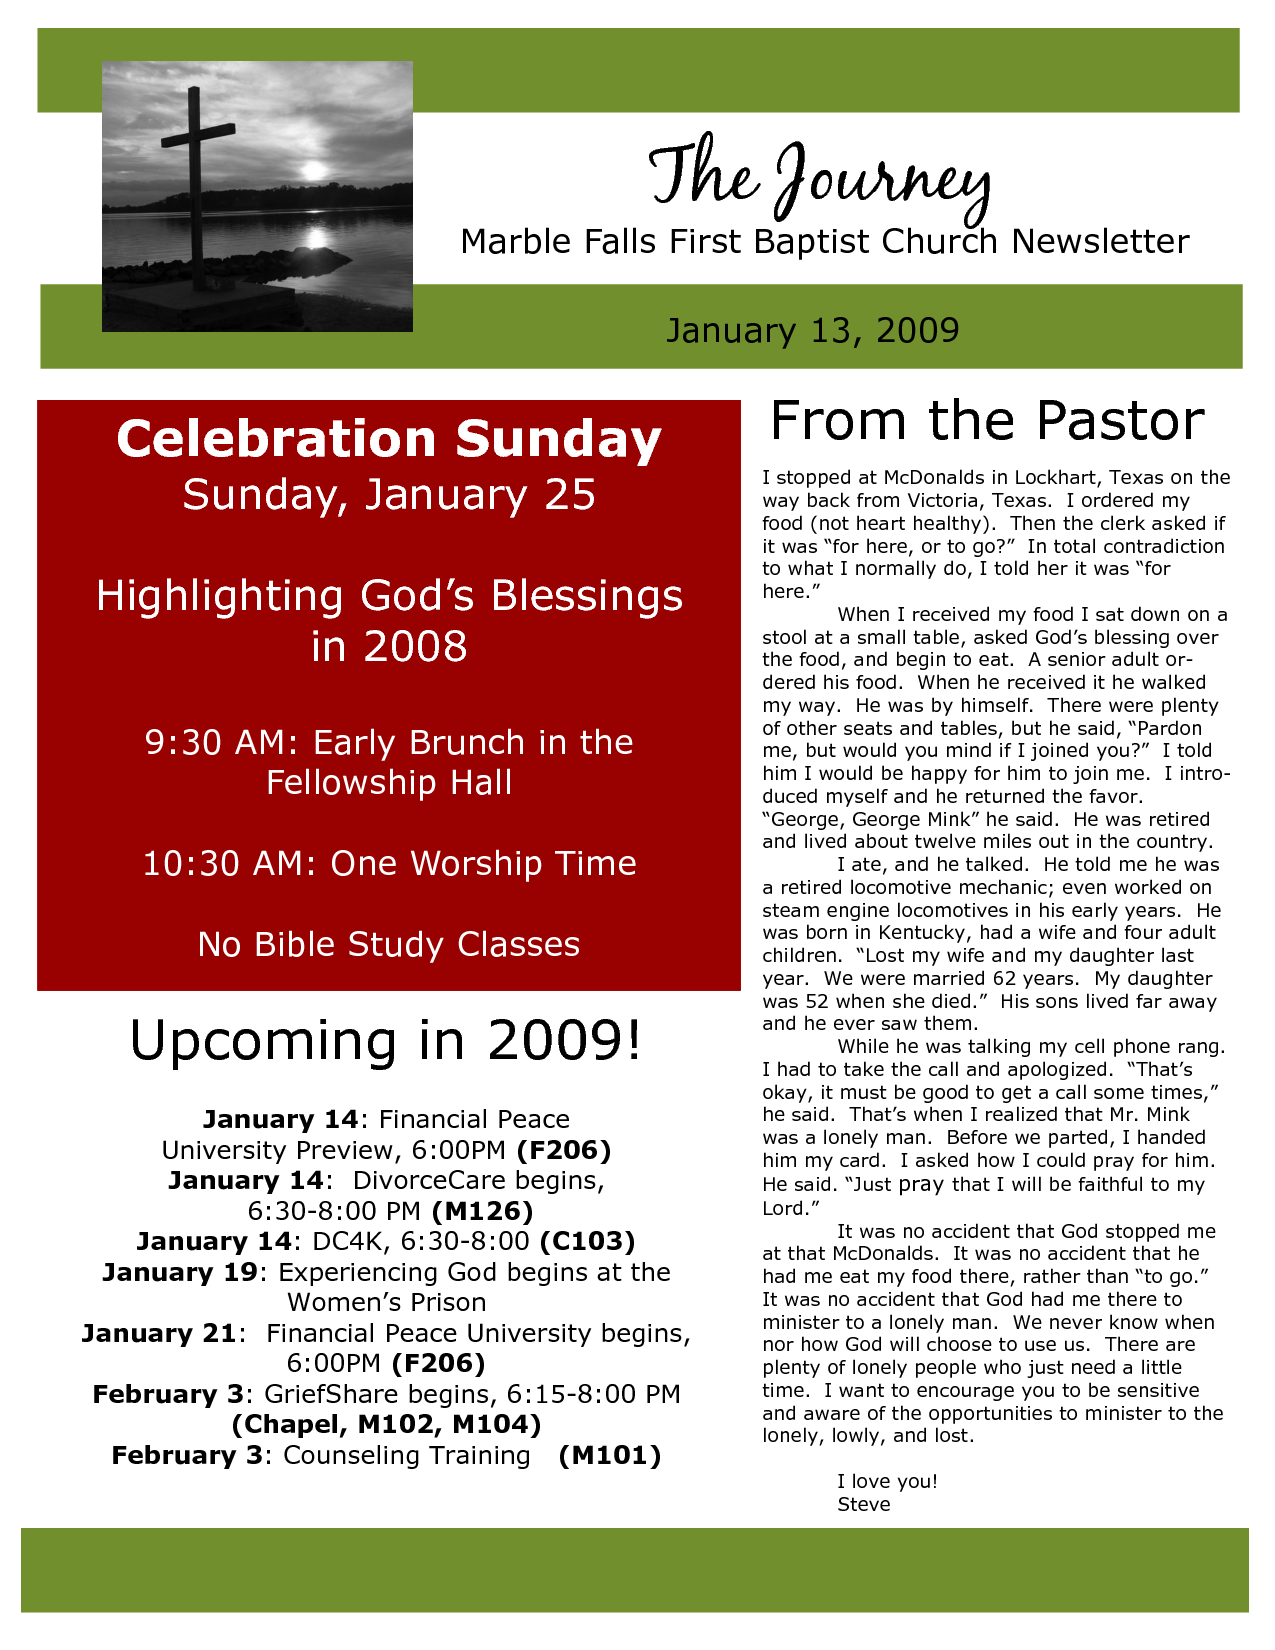 church newsletter sampels marble falls first baptist church